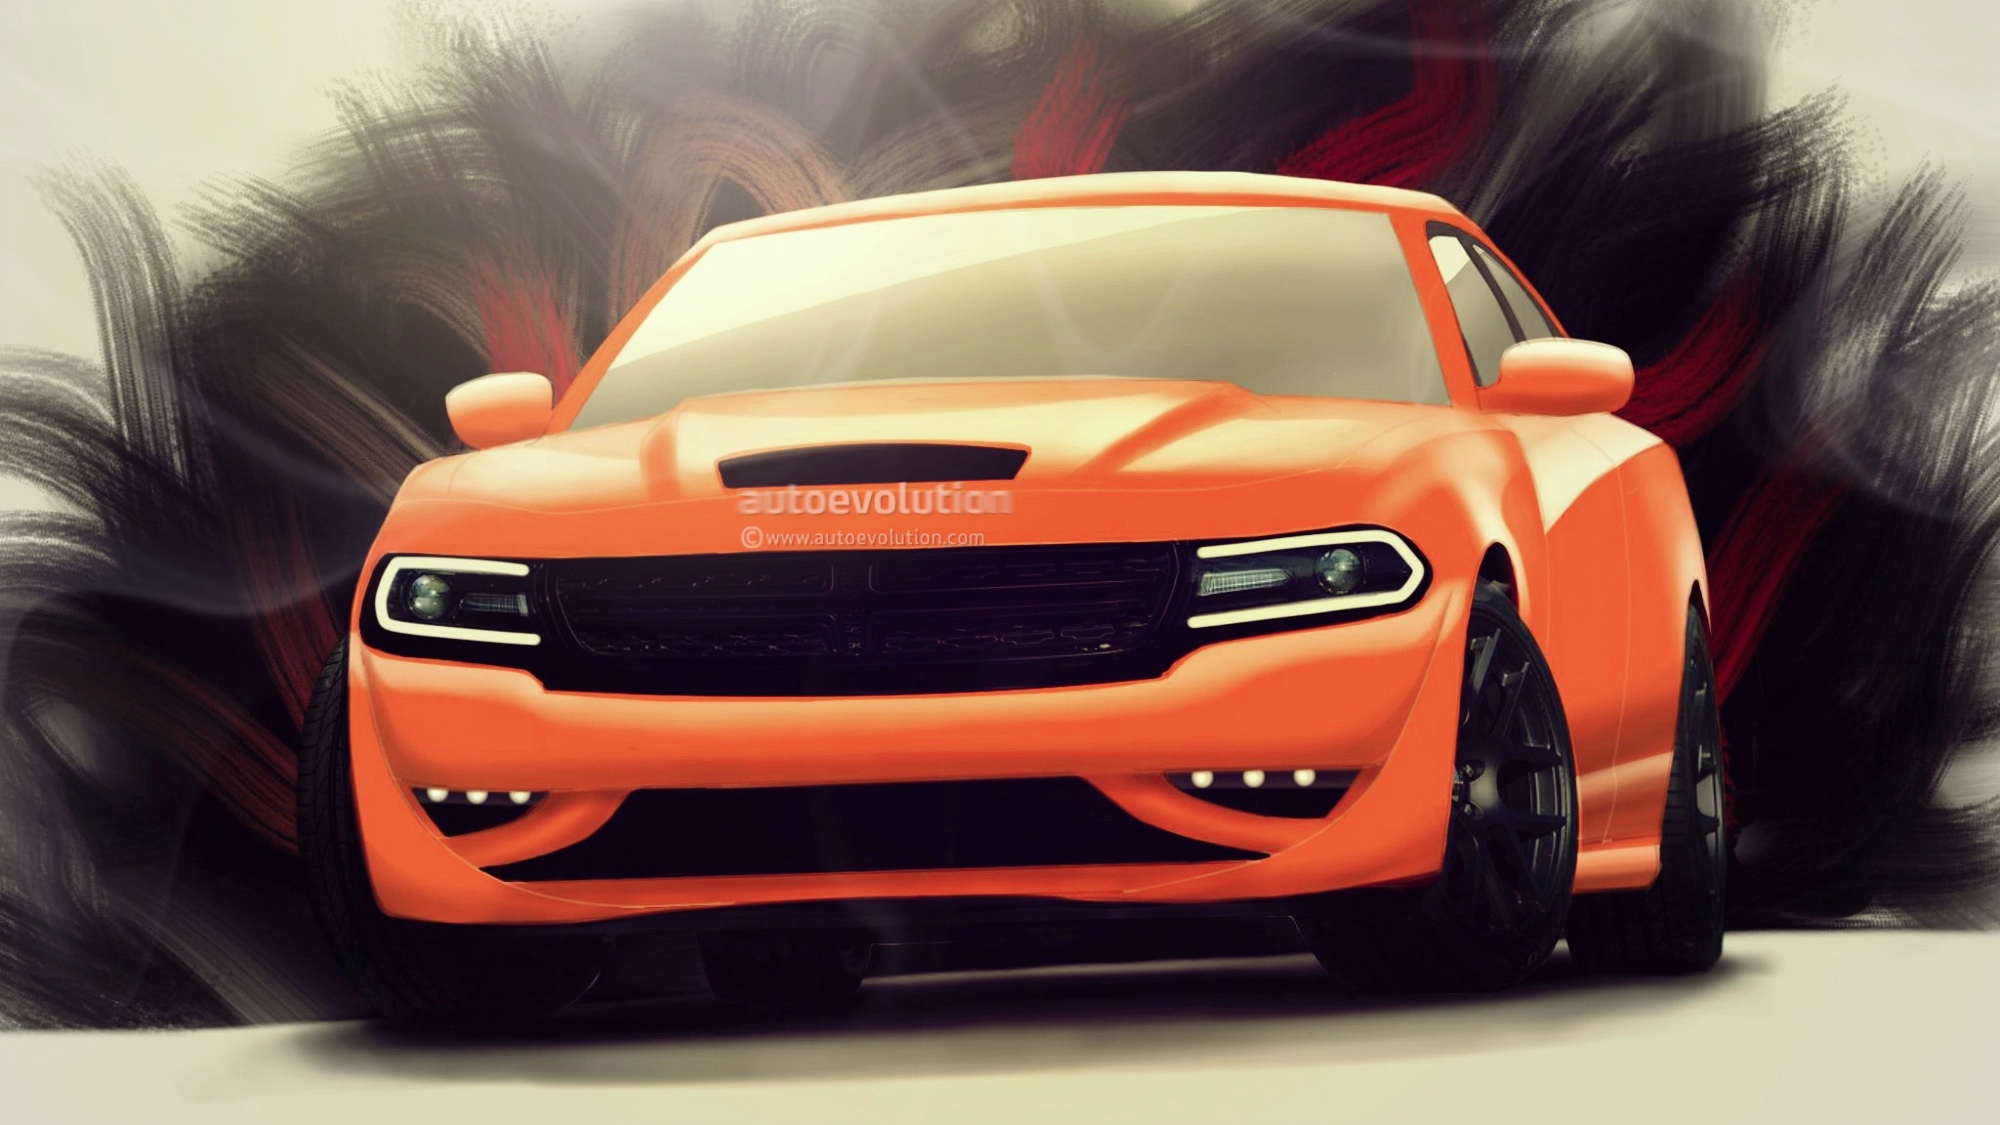 2015 Dodge Charger Srt Hellcat Is Worlds Most Powerful Sedan